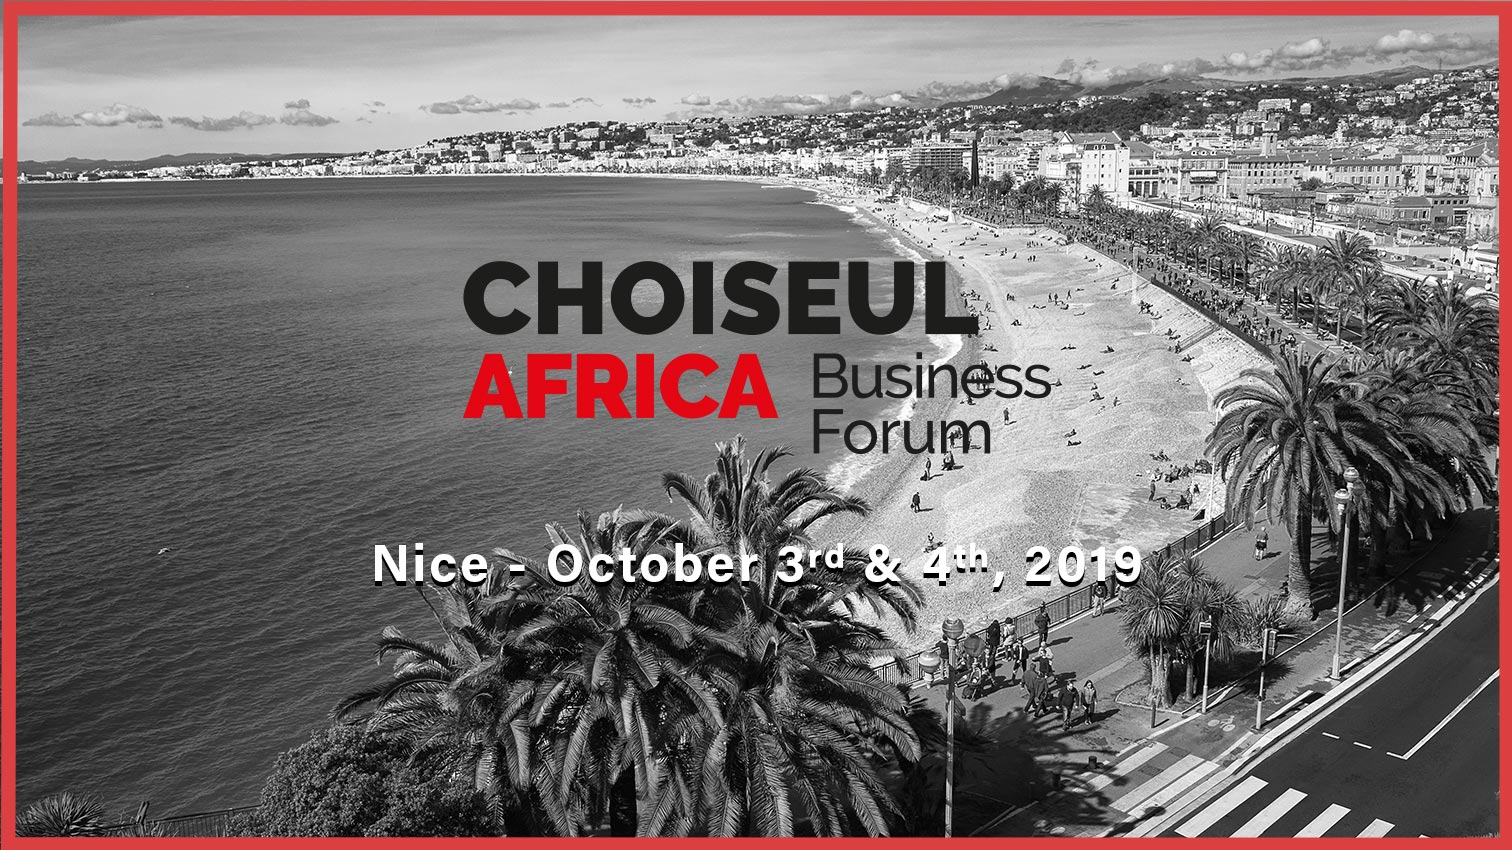 Choiseul Africa Business Forum : le Bilan